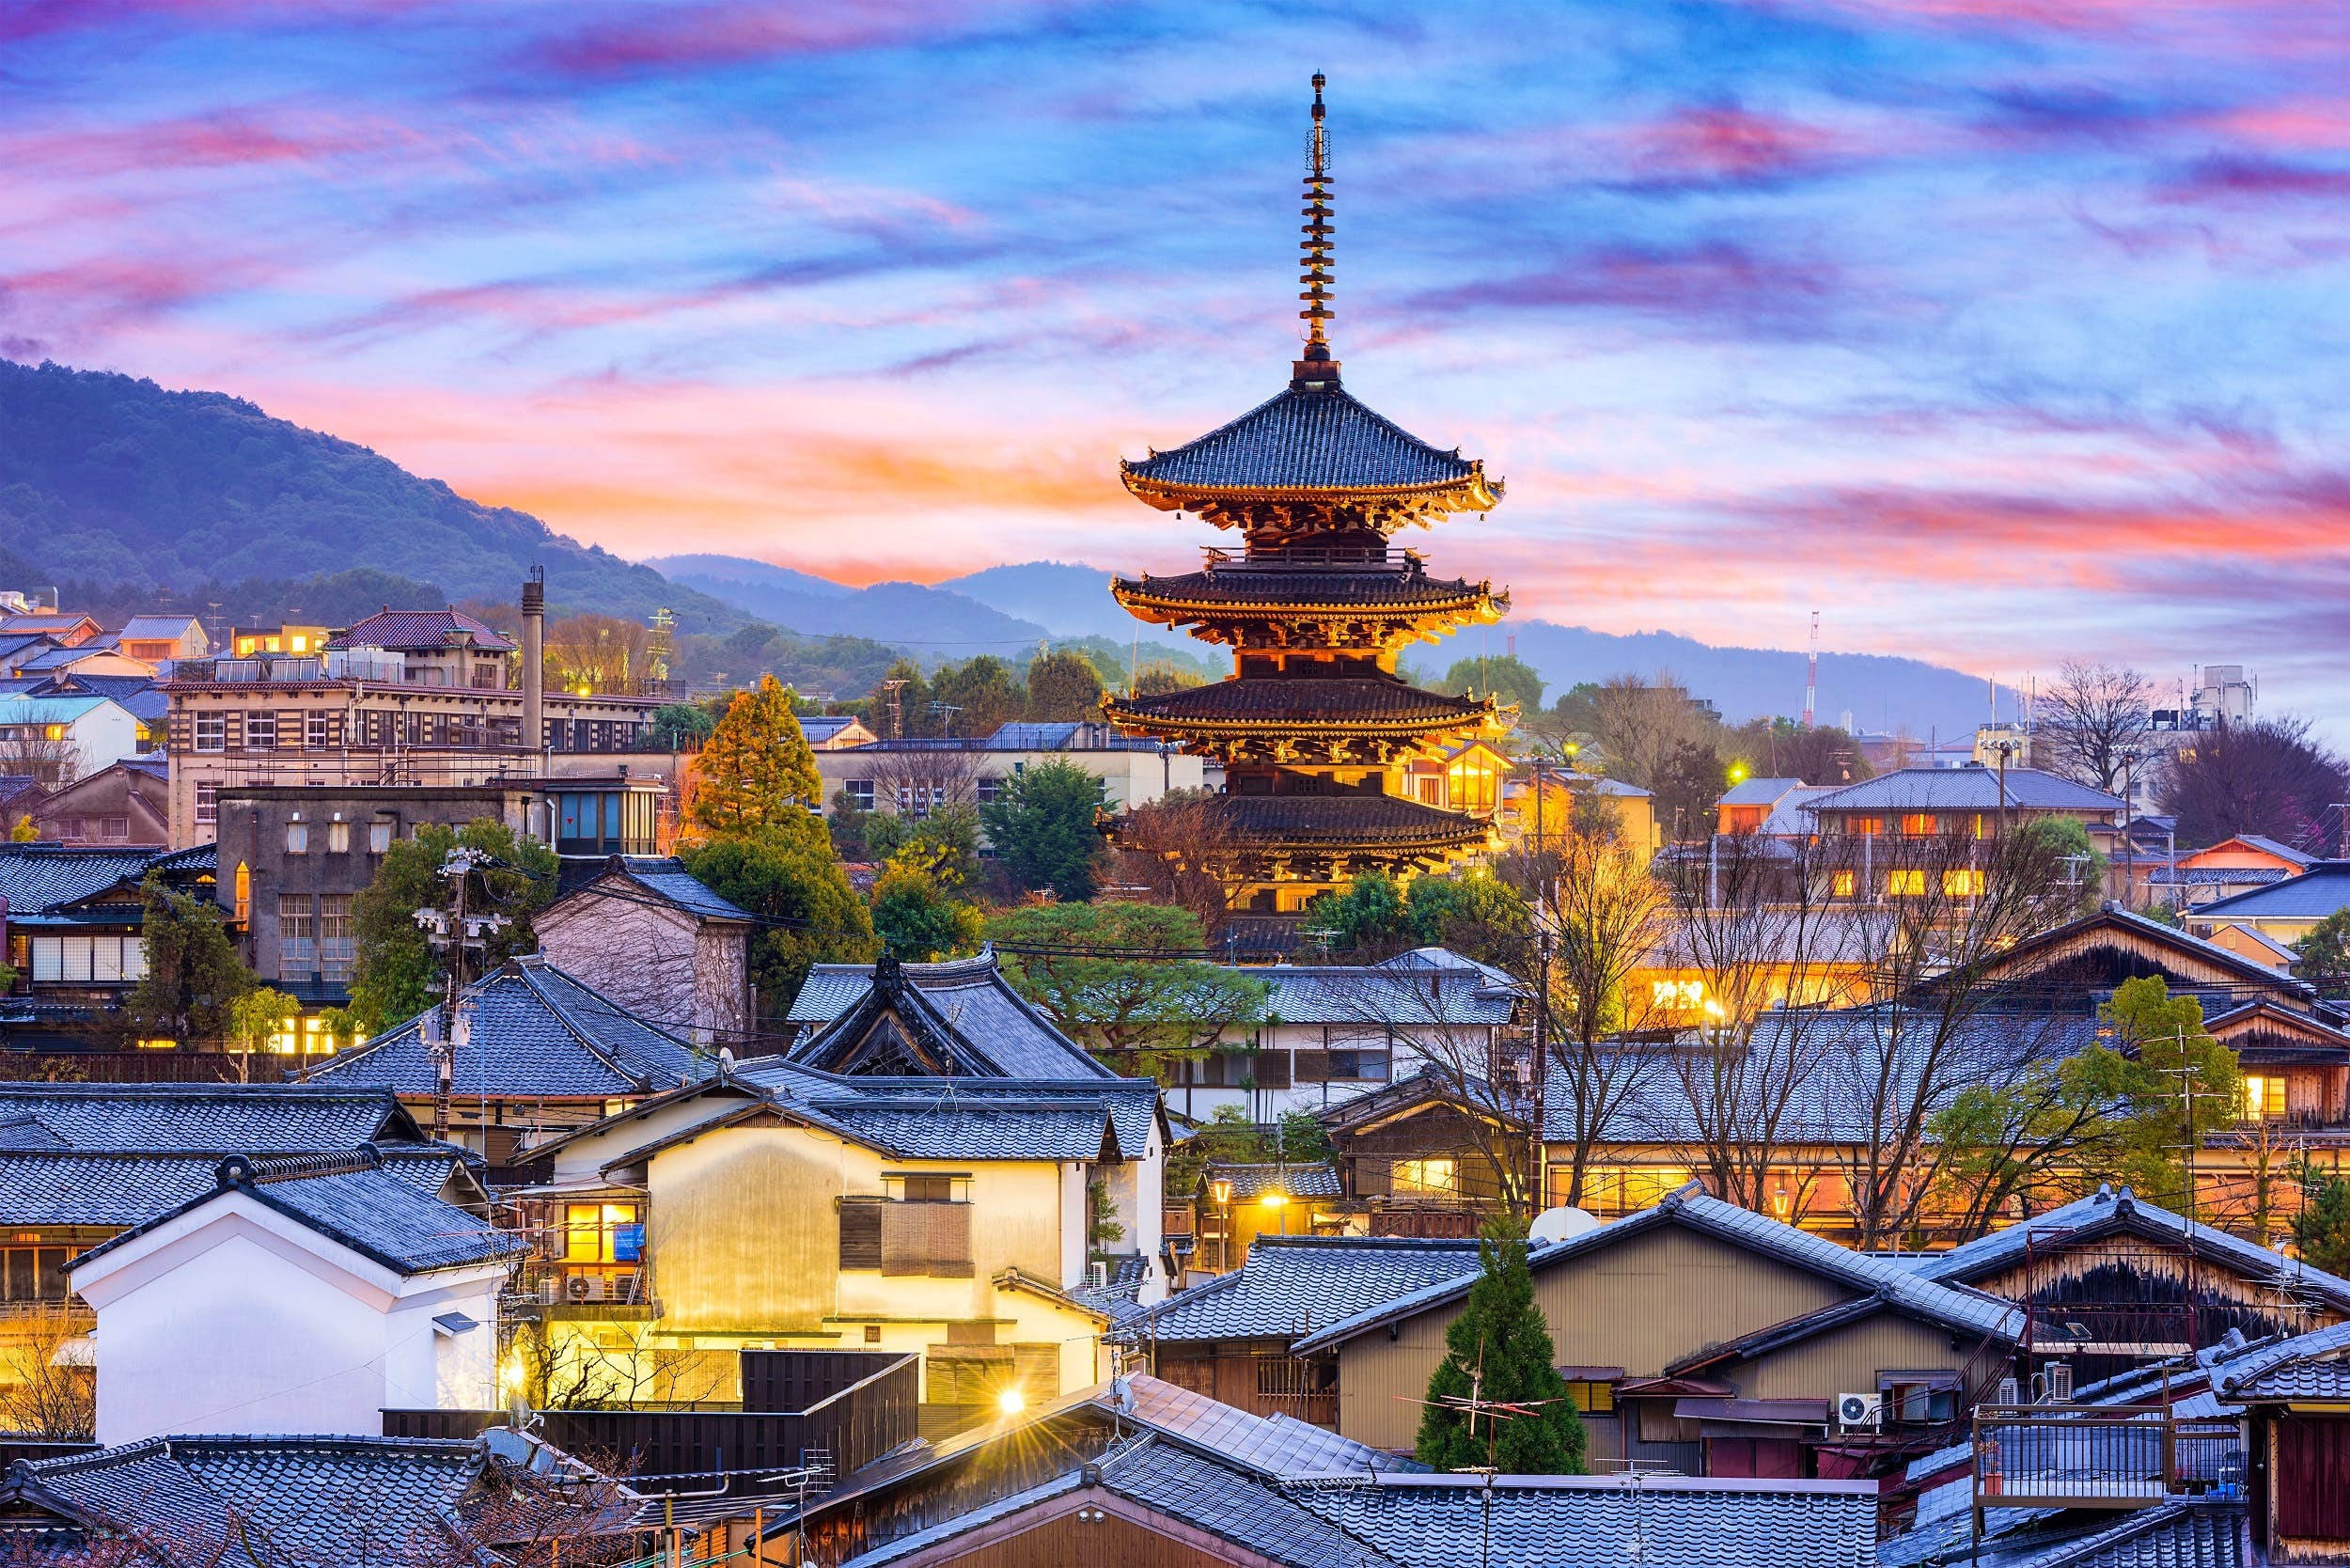 Rooftops and a towering shrine rising into the sky at sunset within Higashiyama